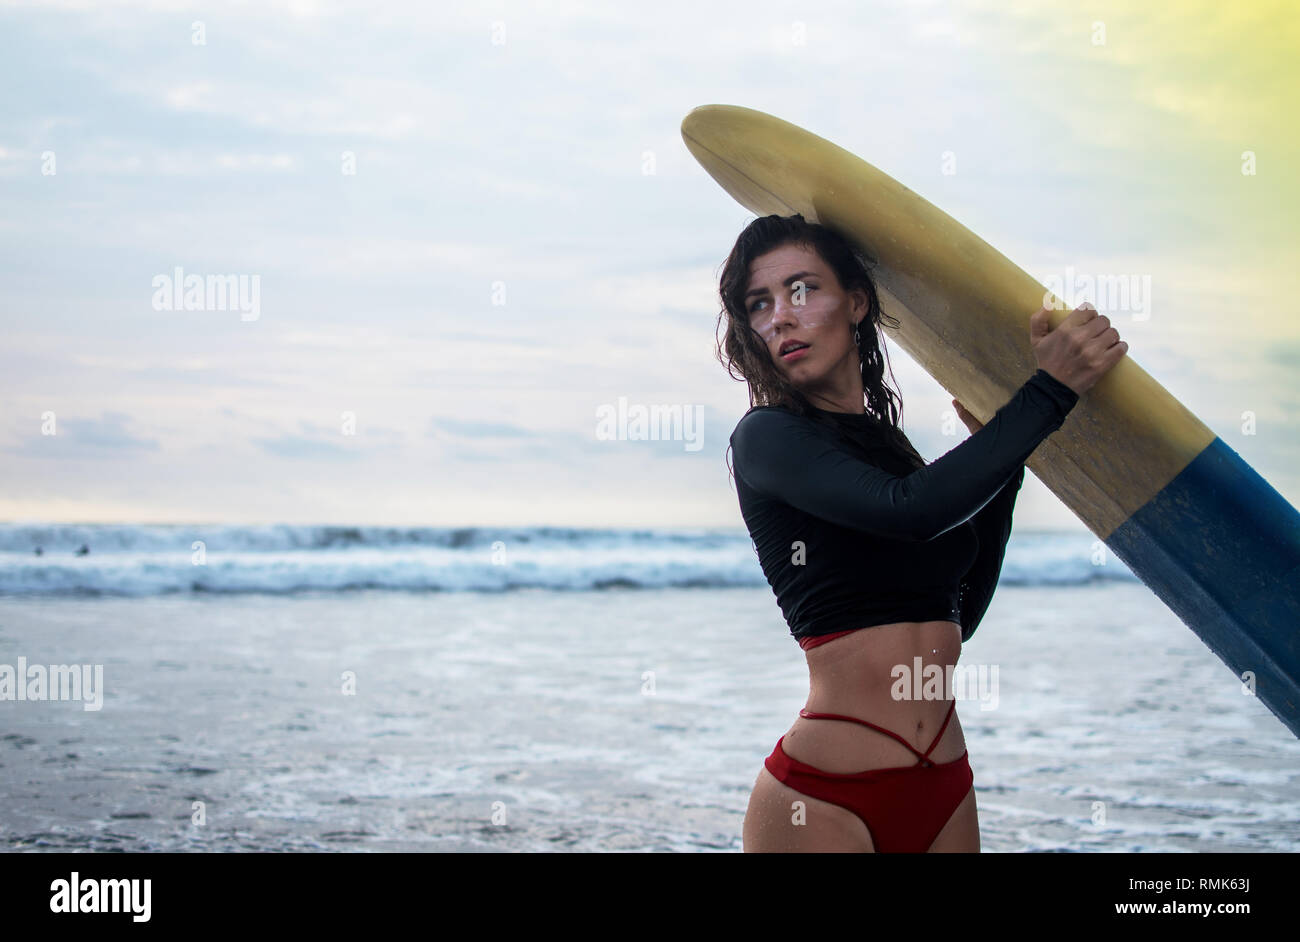 Outdoor shot of young girl waxes surfboard for safe riding waves, dressed in black swimsuit, takes care of safety, with white lines mask on her pretty - Stock Image